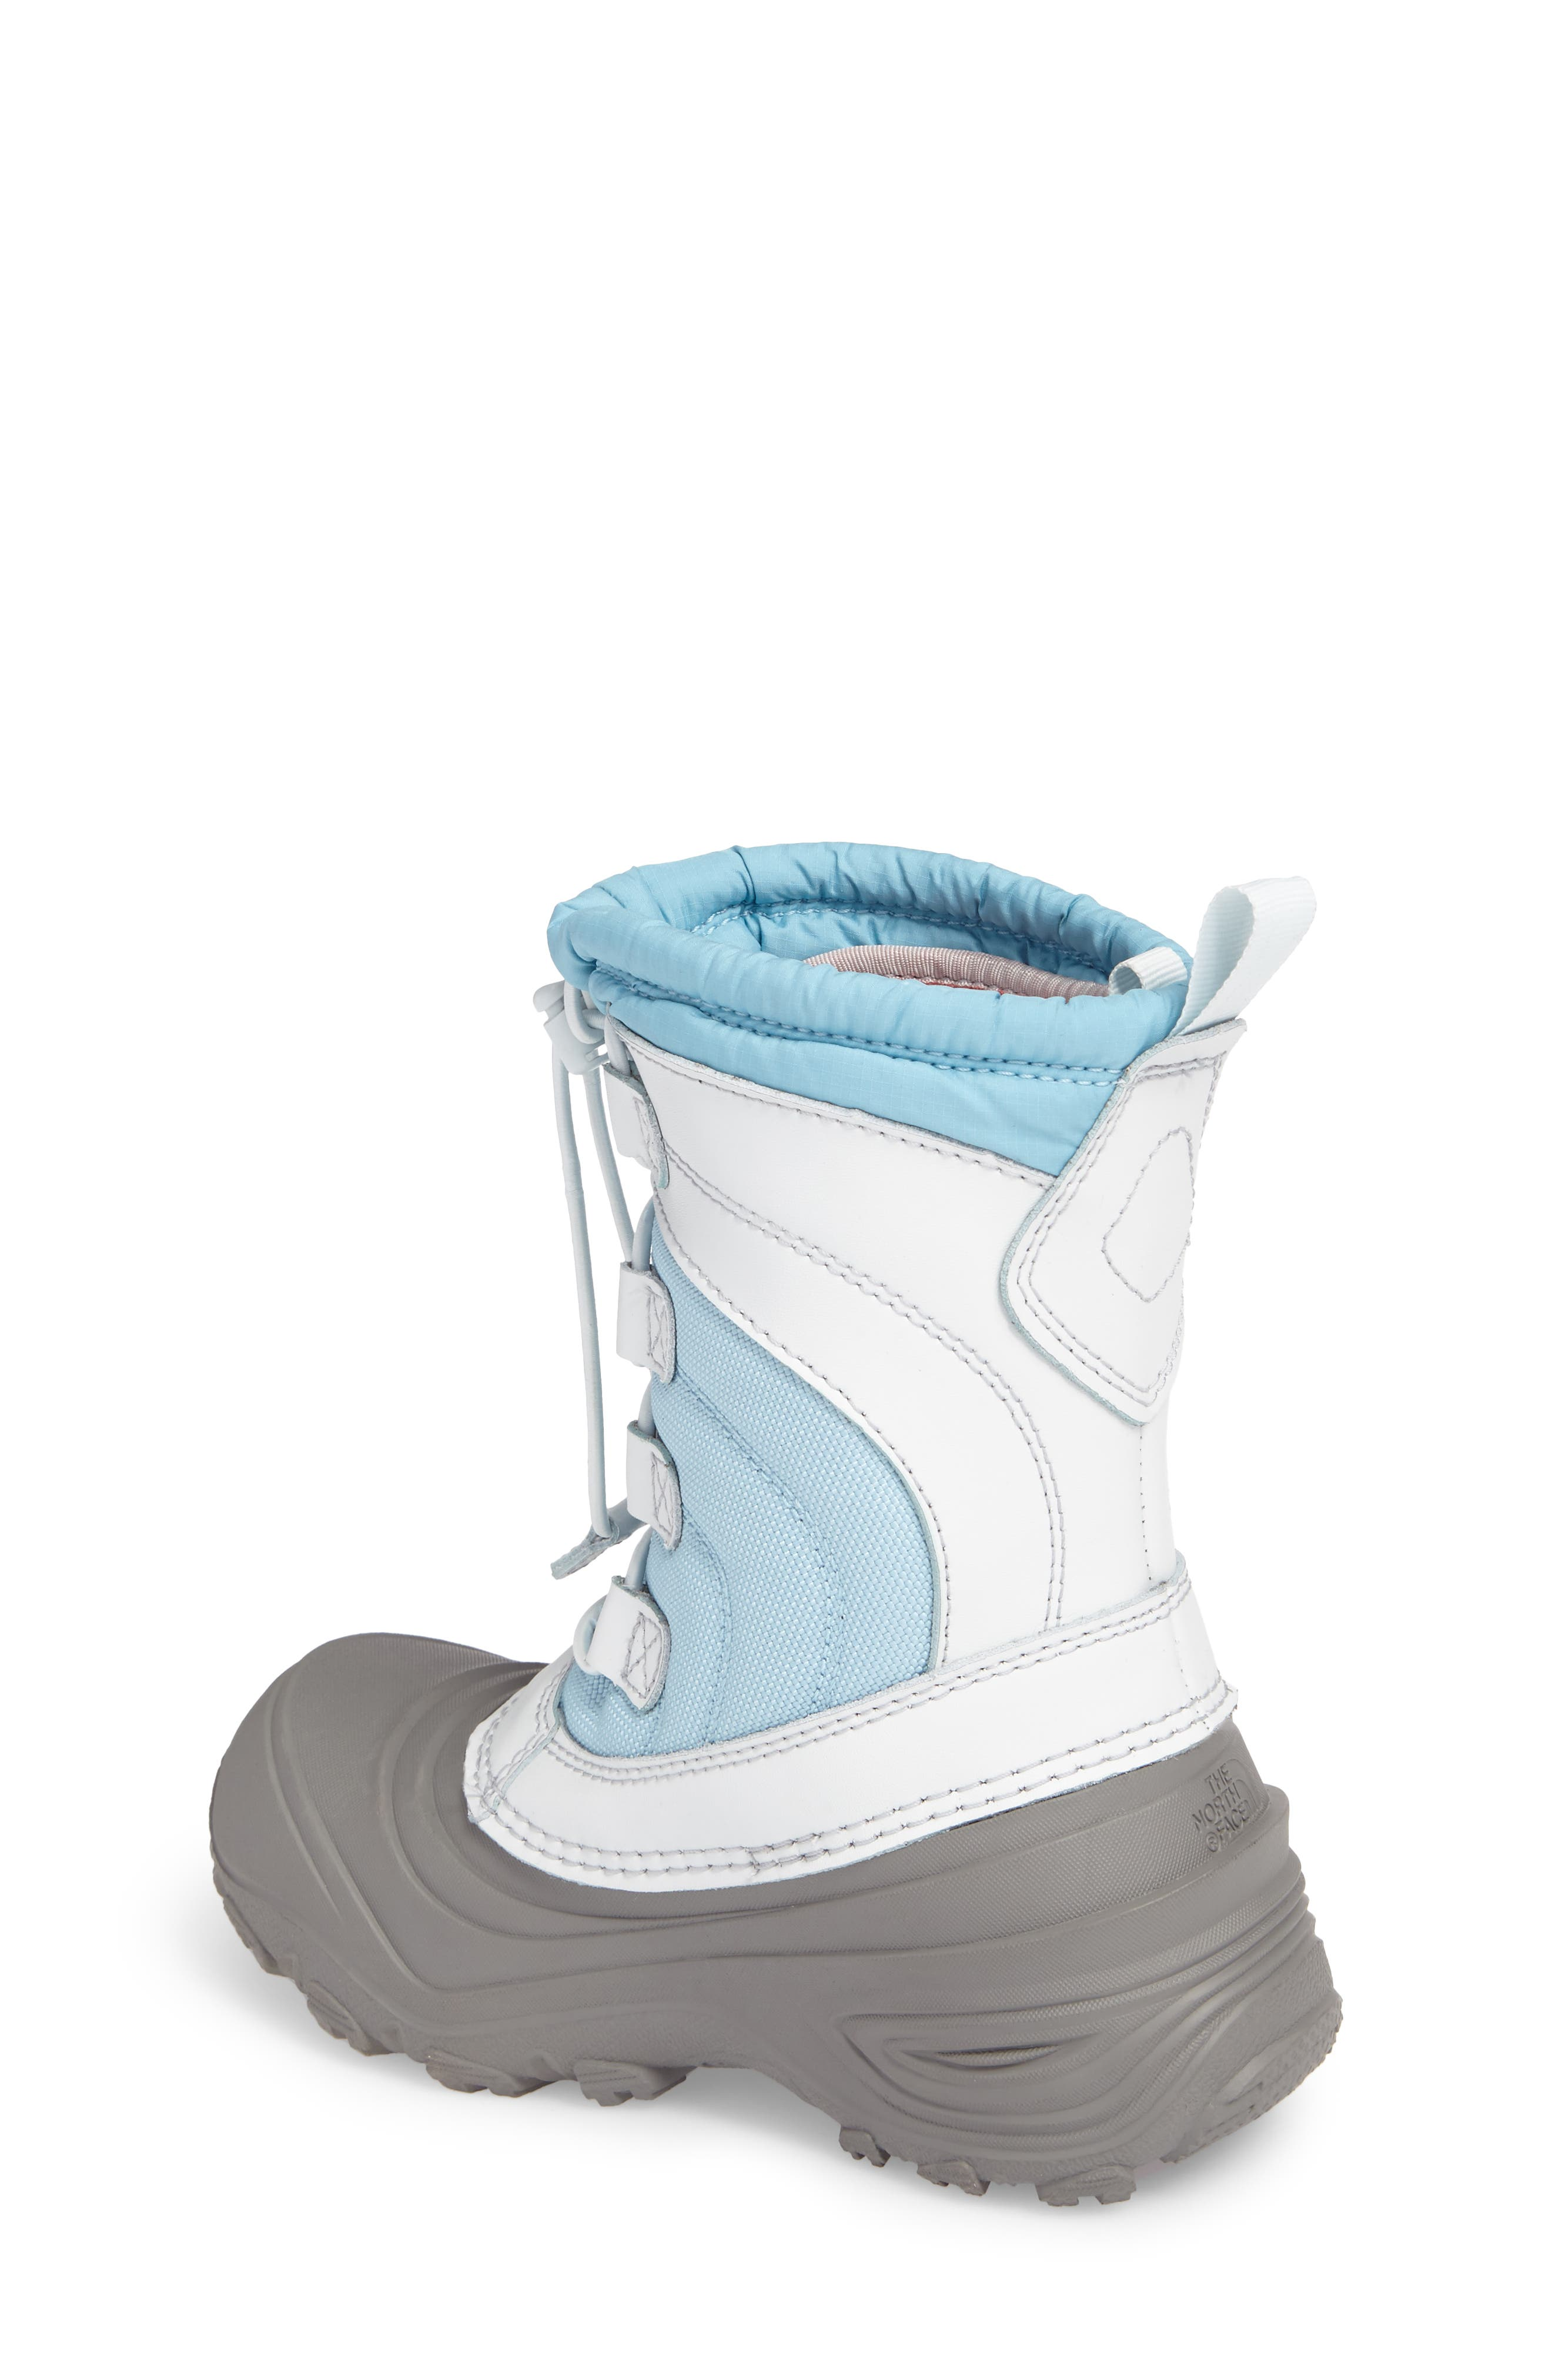 Alpenglow IV Waterproof Insulated Winter Boot,                             Alternate thumbnail 2, color,                             400